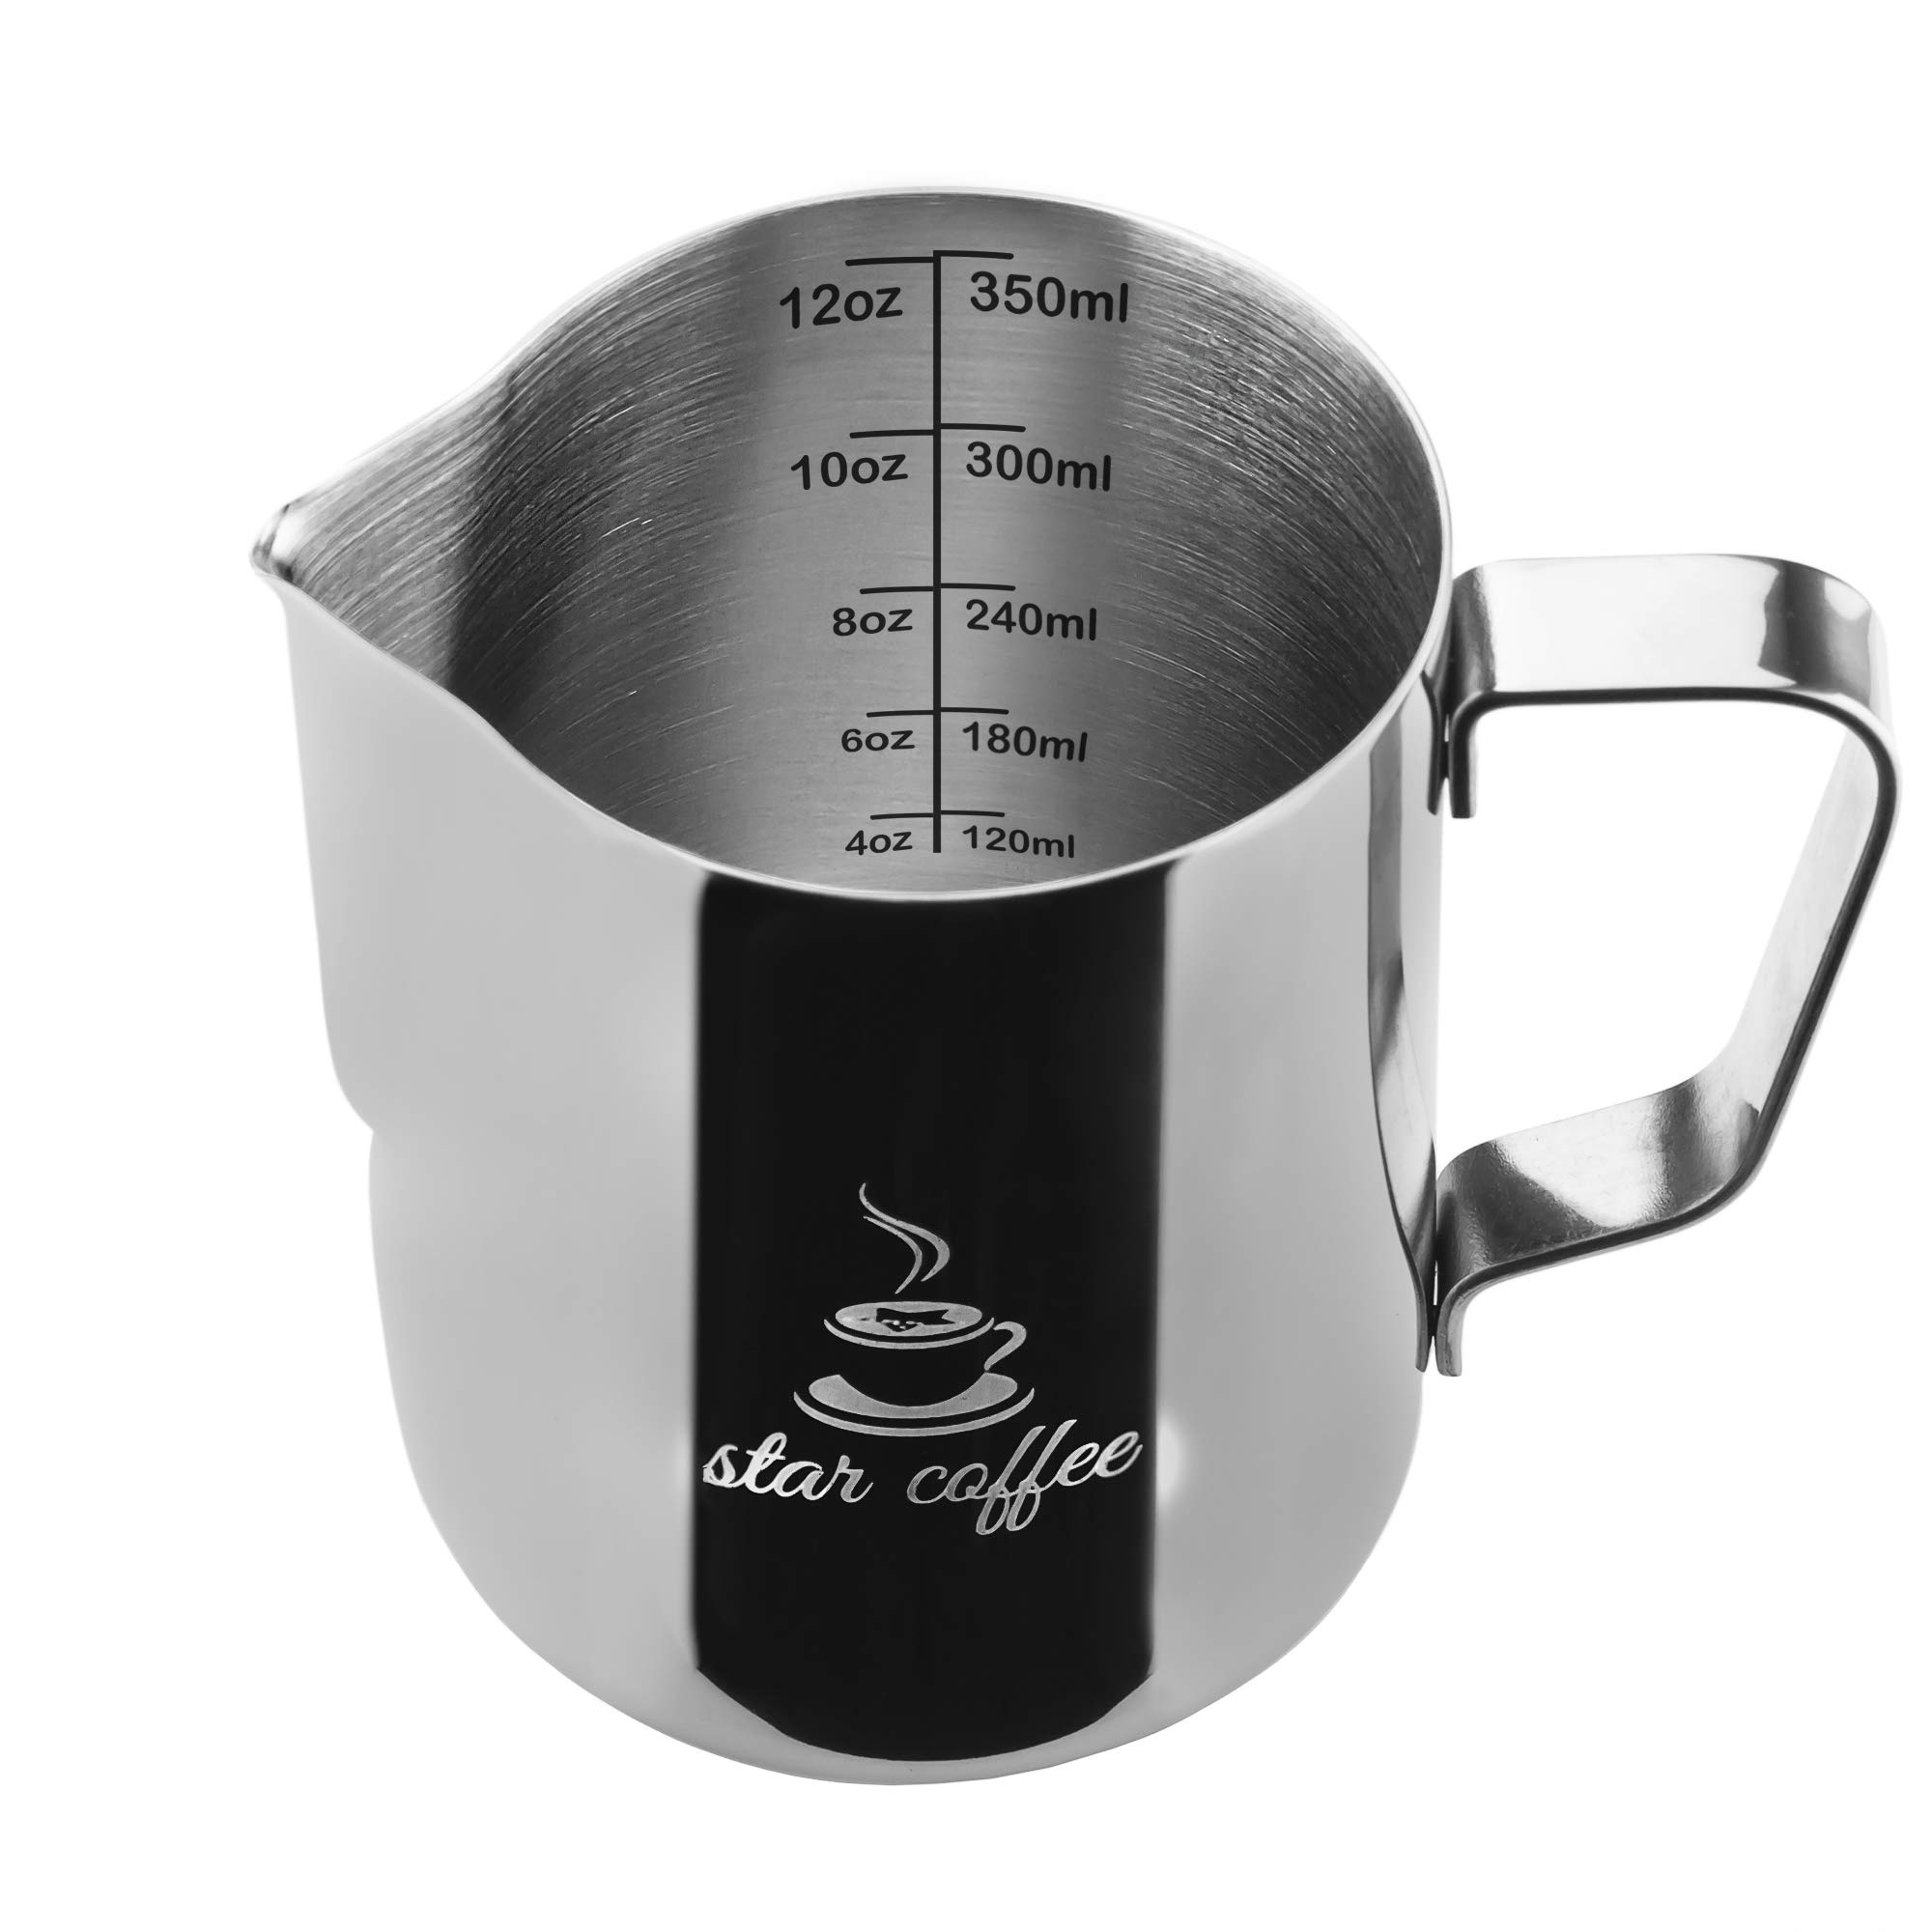 Star Coffee 12, 20 or 32oz Stainless Steel Milk Frothing Pitcher - Measurements on Both Sides Inside Plus eBook & Microfiber Cloth - Perfect for Espresso Machines, Milk Frothers, Latte Art